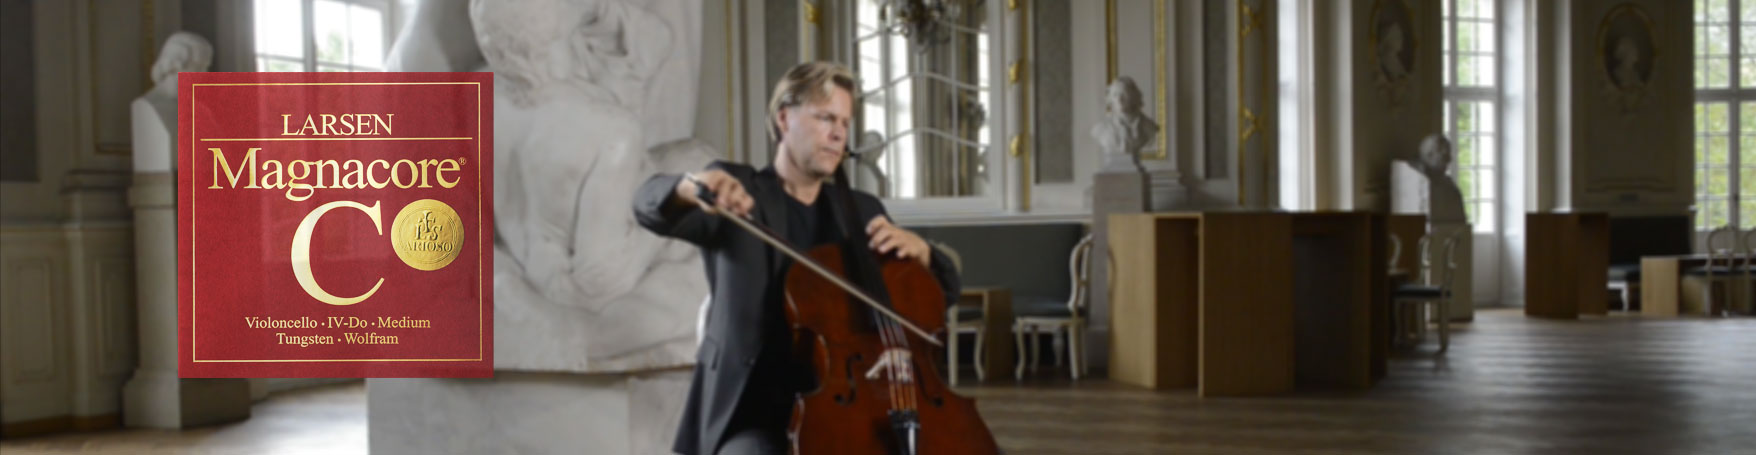 Christopher Franzius plays Larsen Magnacore Arioso cello strings